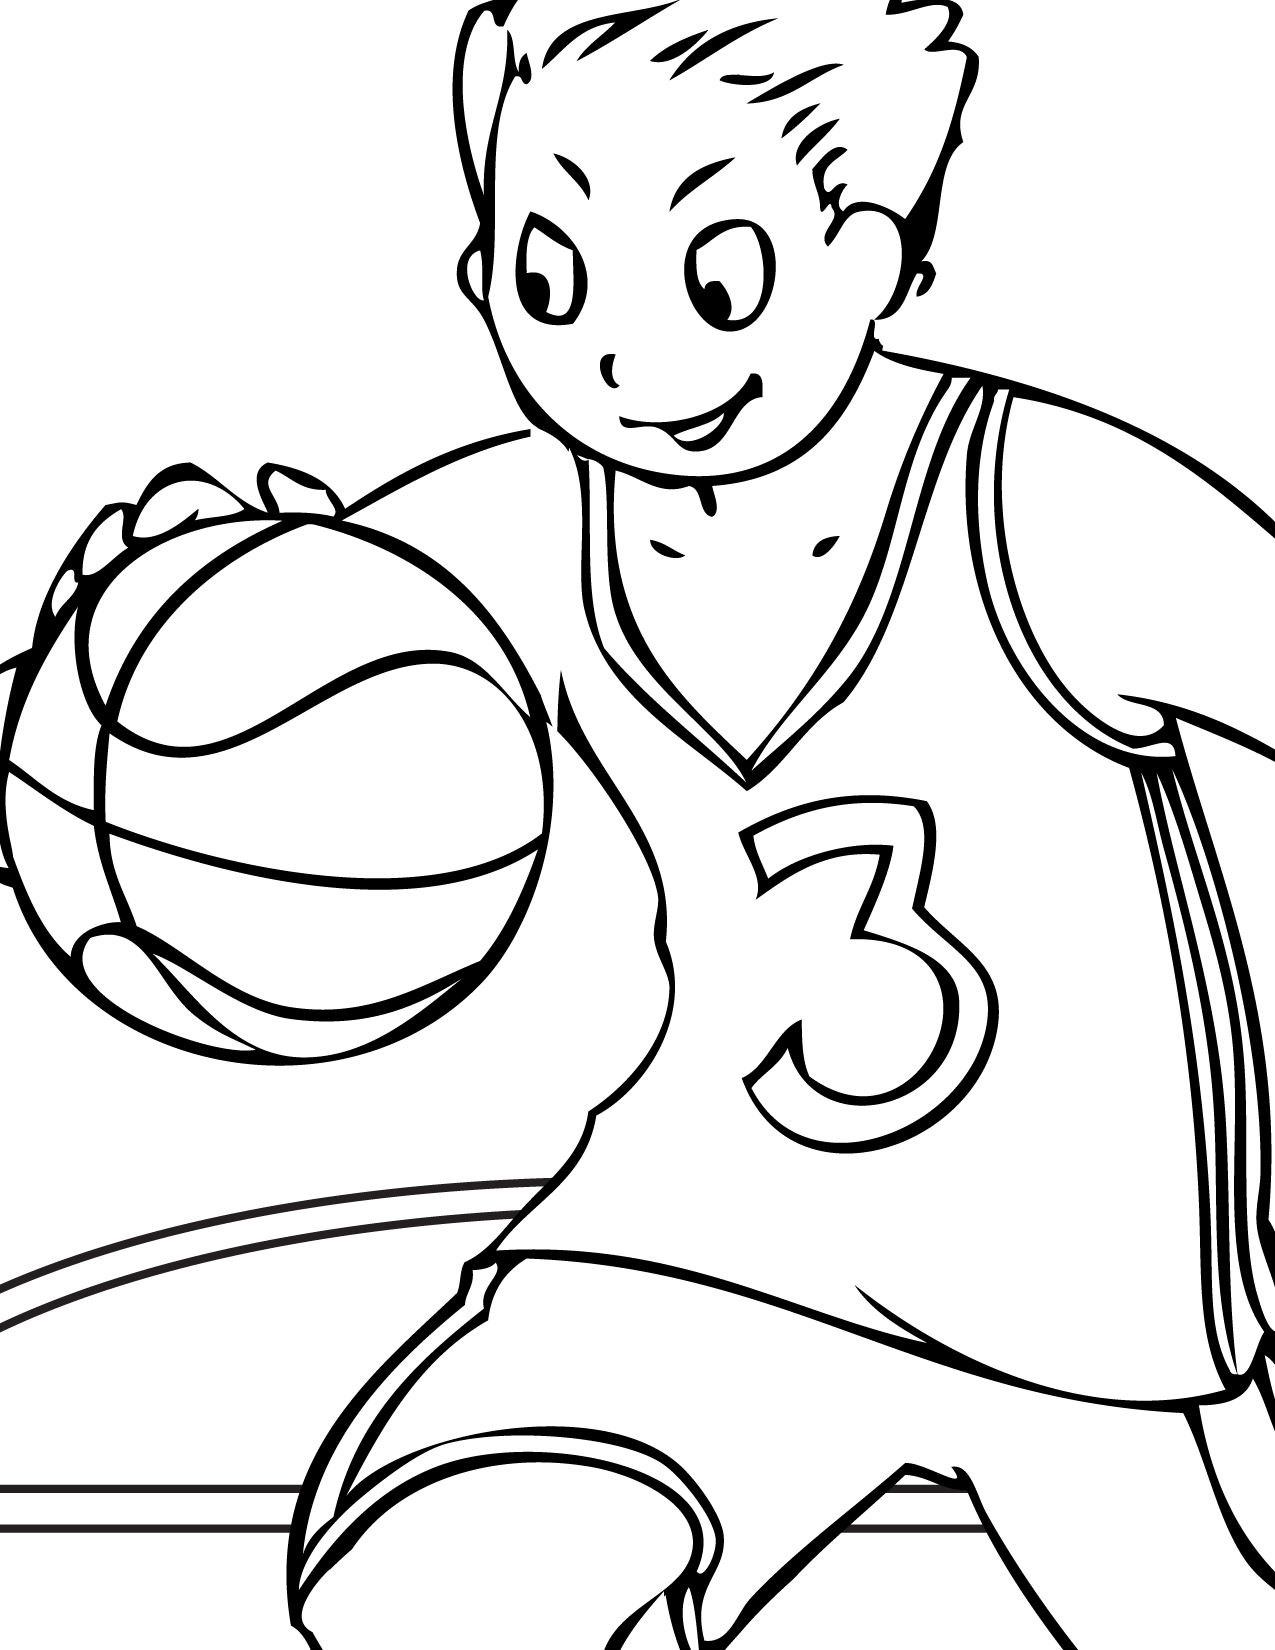 Free printable volleyball coloring pages for kids for Coloring pages